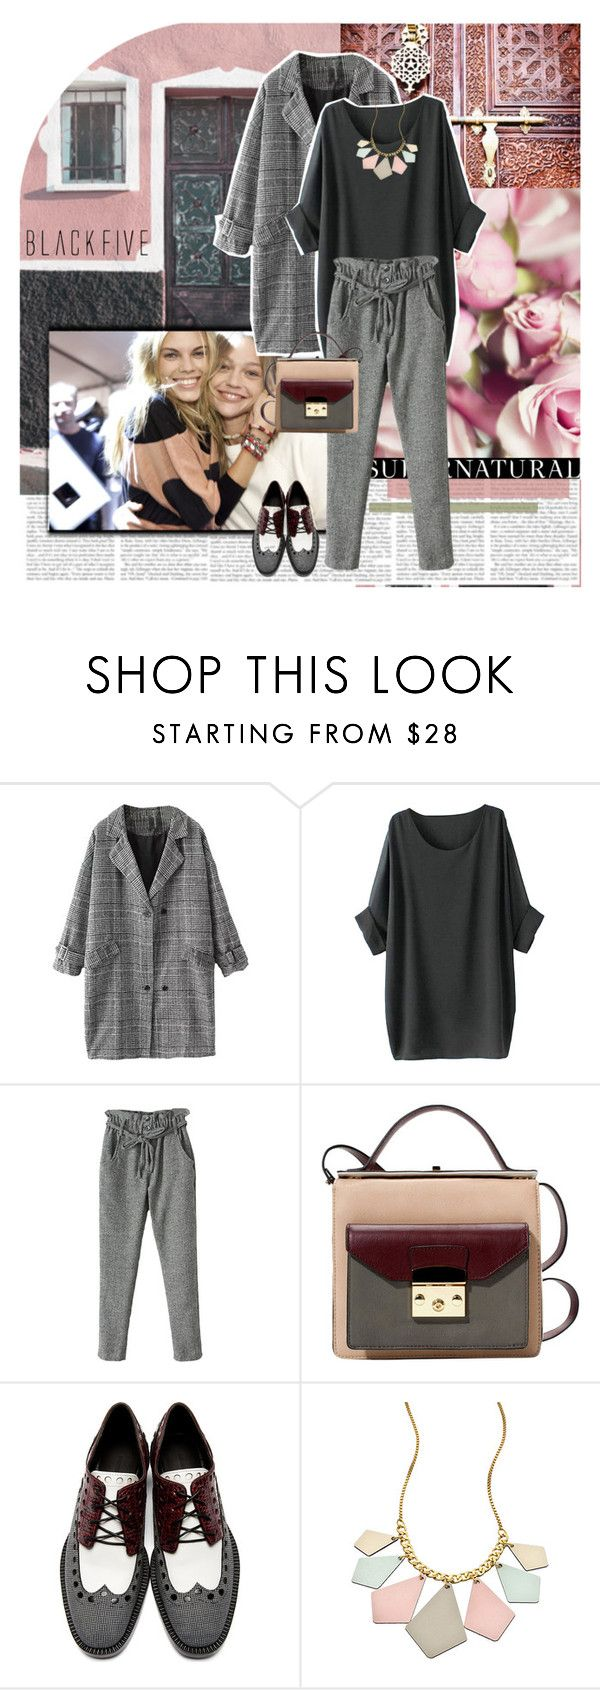 """""""Rainy Day"""" by cherry1987 ❤ liked on Polyvore featuring EDEN, Beautiful People, Alexander Wang and Shlomit Ofir"""